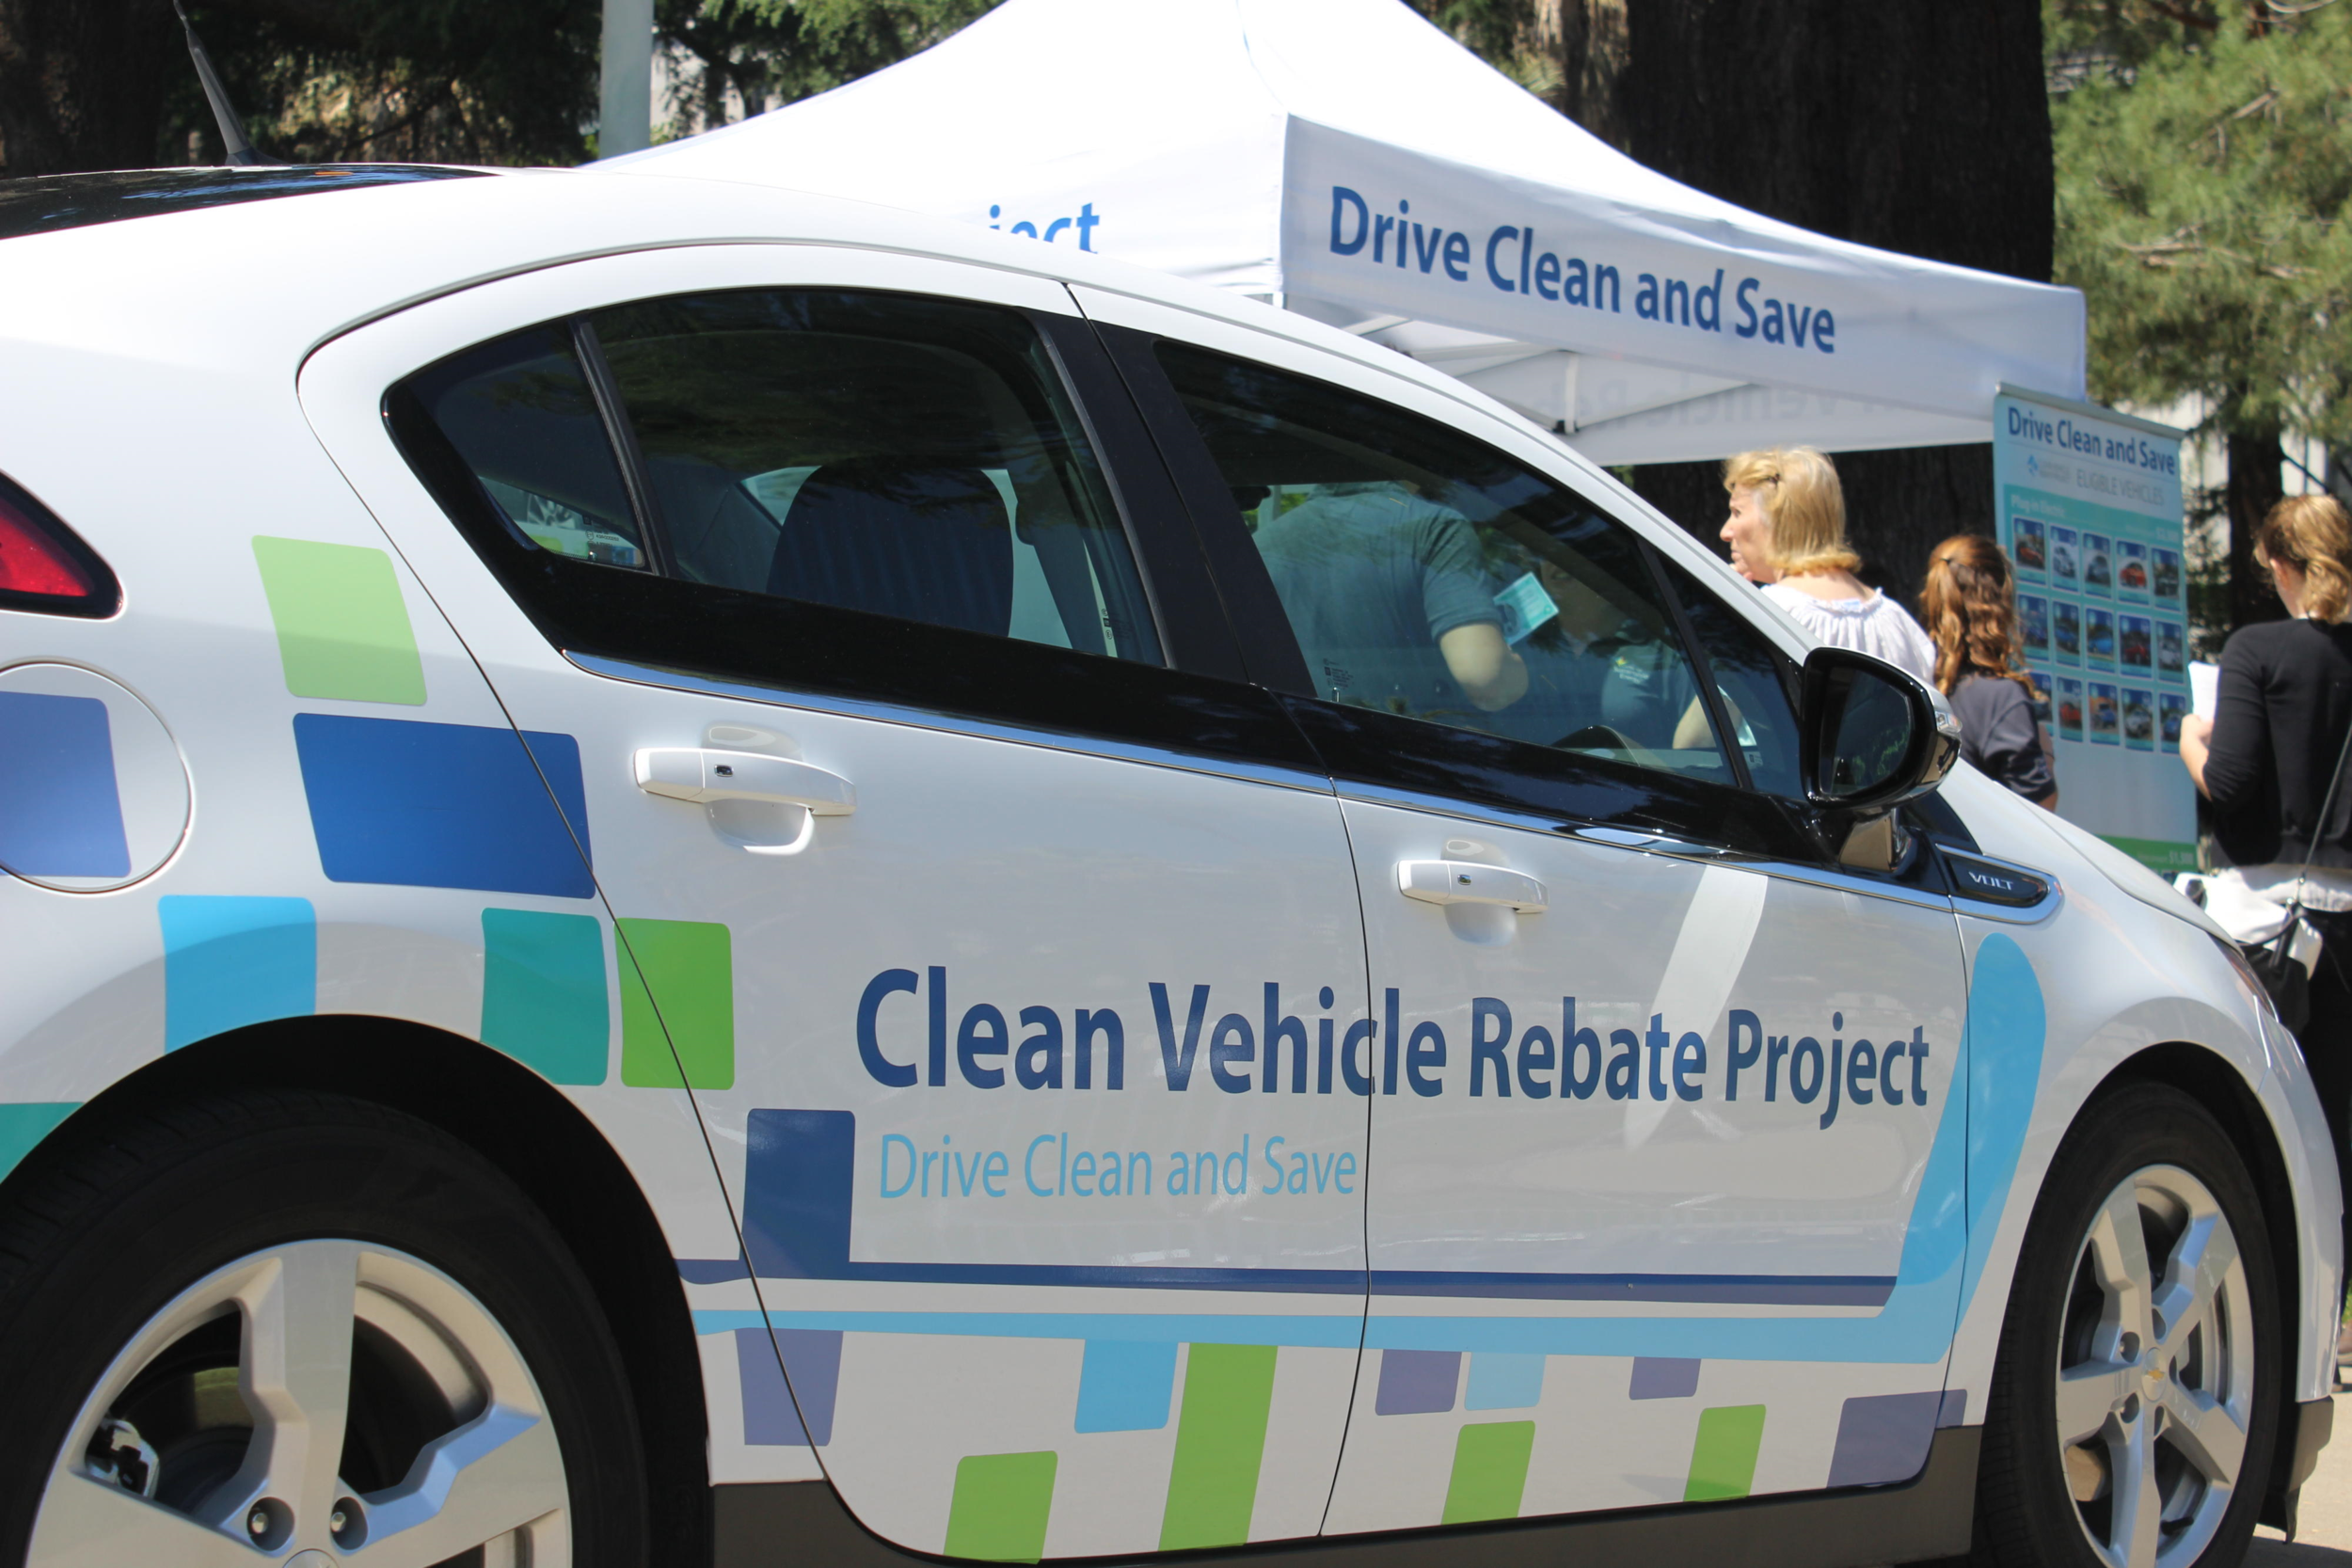 Clean vehicle rebate project, california climate investments. the image depicts a white car with the words, clean car vehicle rebate project, drive clean and save, written on it.